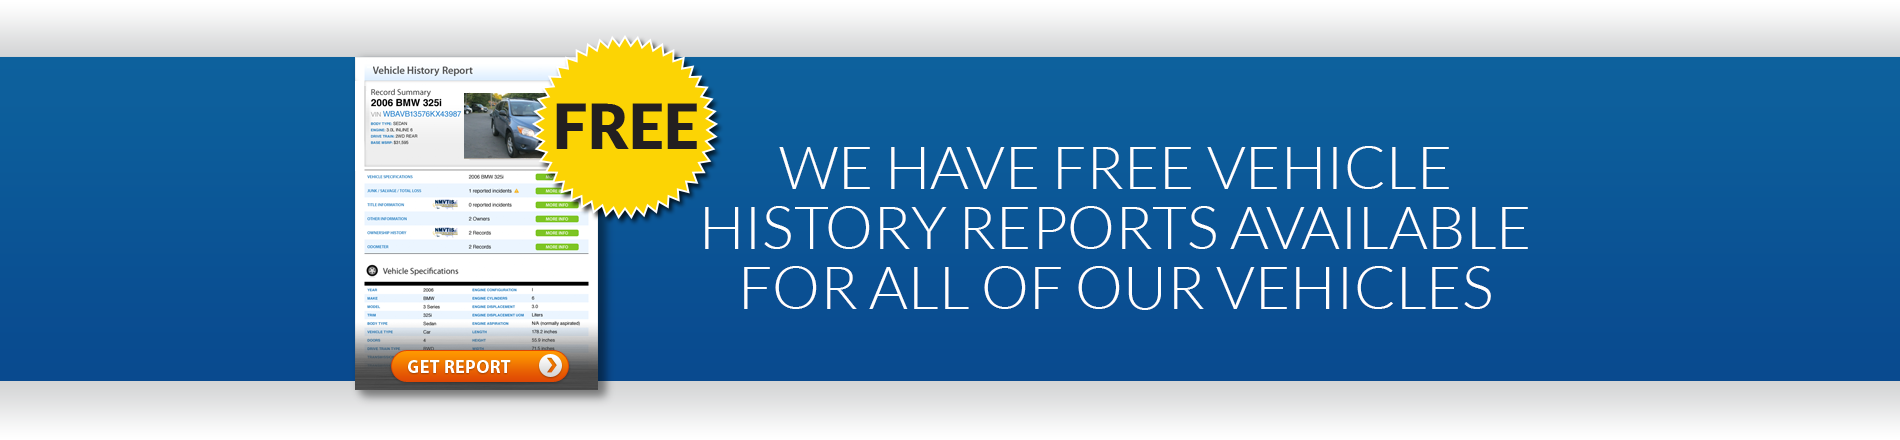 Free vehicle history reports